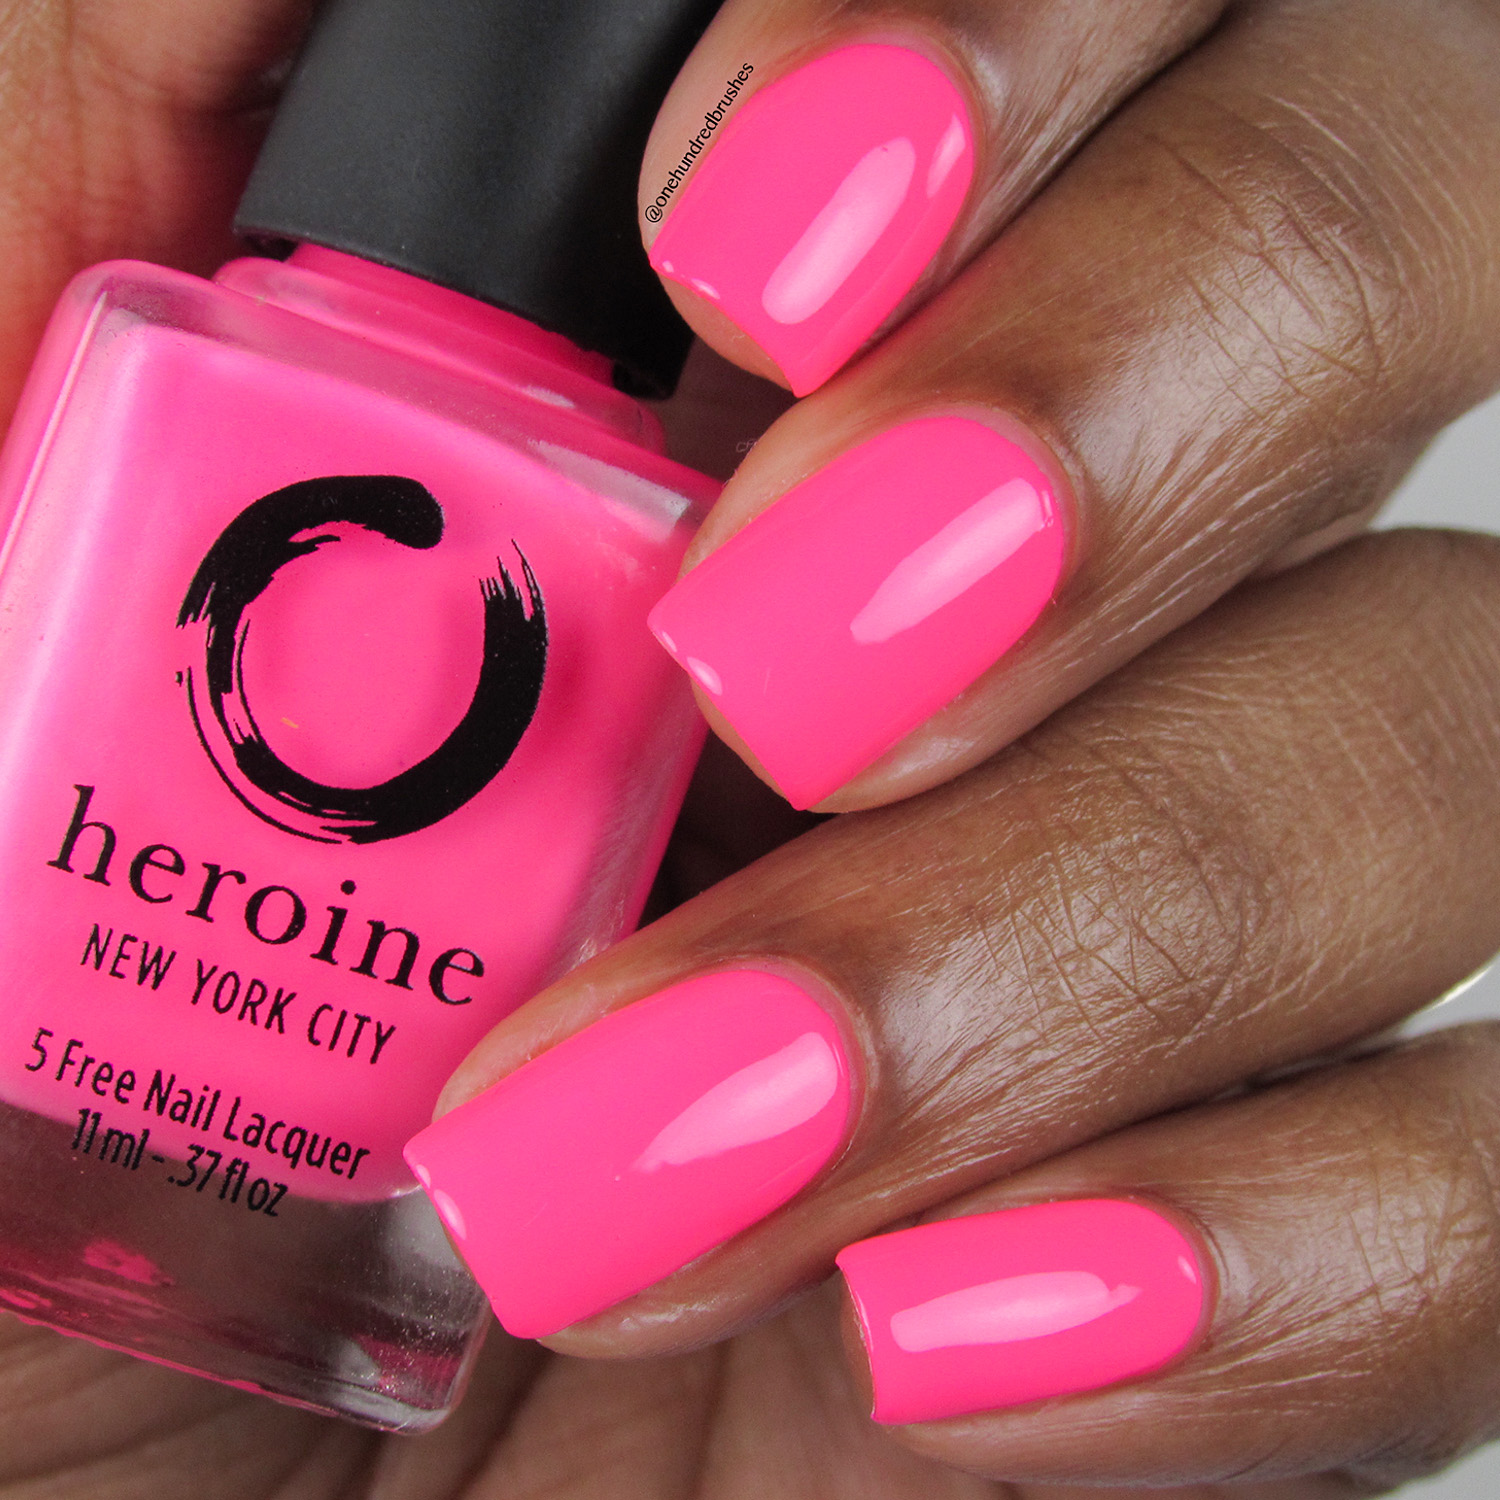 Mean Girl - Bottle Front - Heroine NYC - The Neons - Neon pink - pink